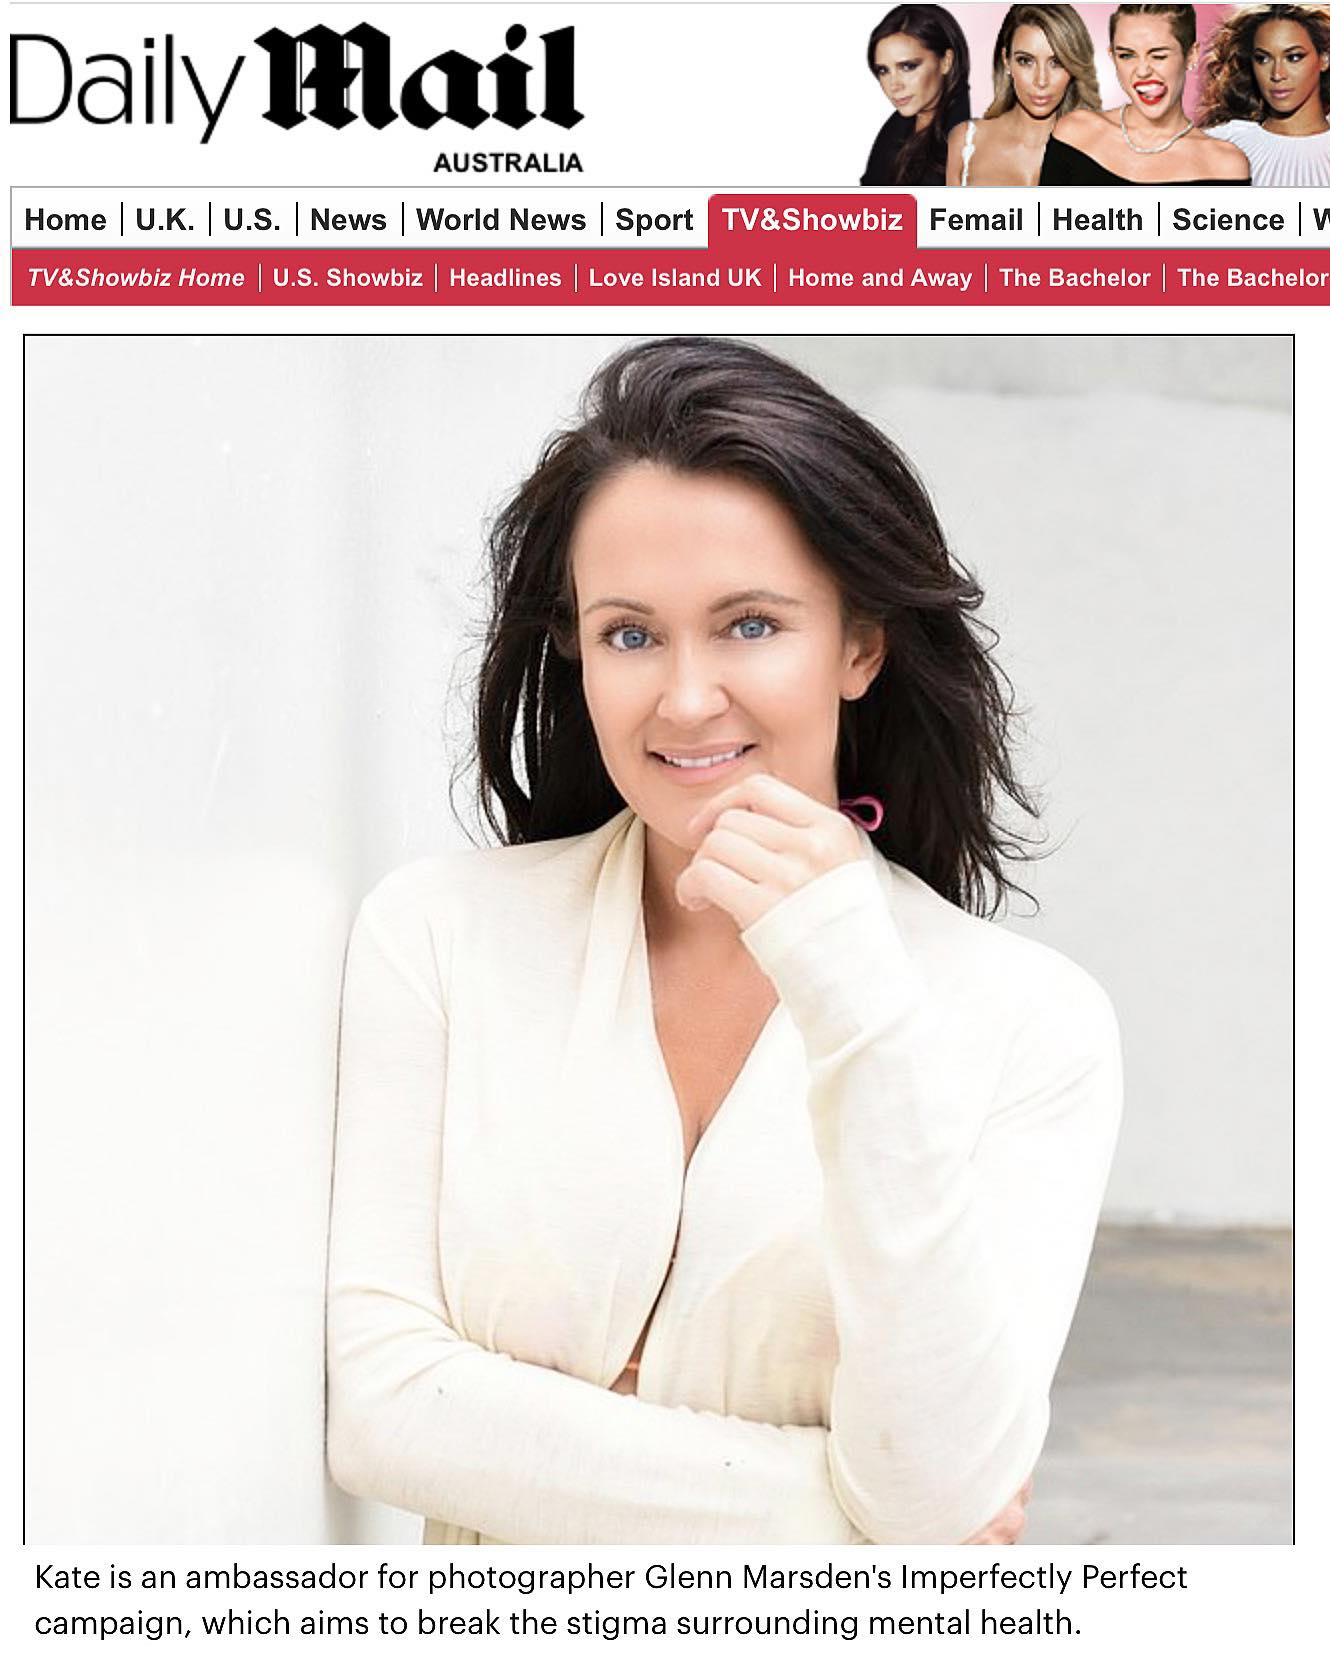 Daily Mail Australia - Kate Neilson, Ambassador for Glenn Marsden's Imperfectly Perfect Campaign.